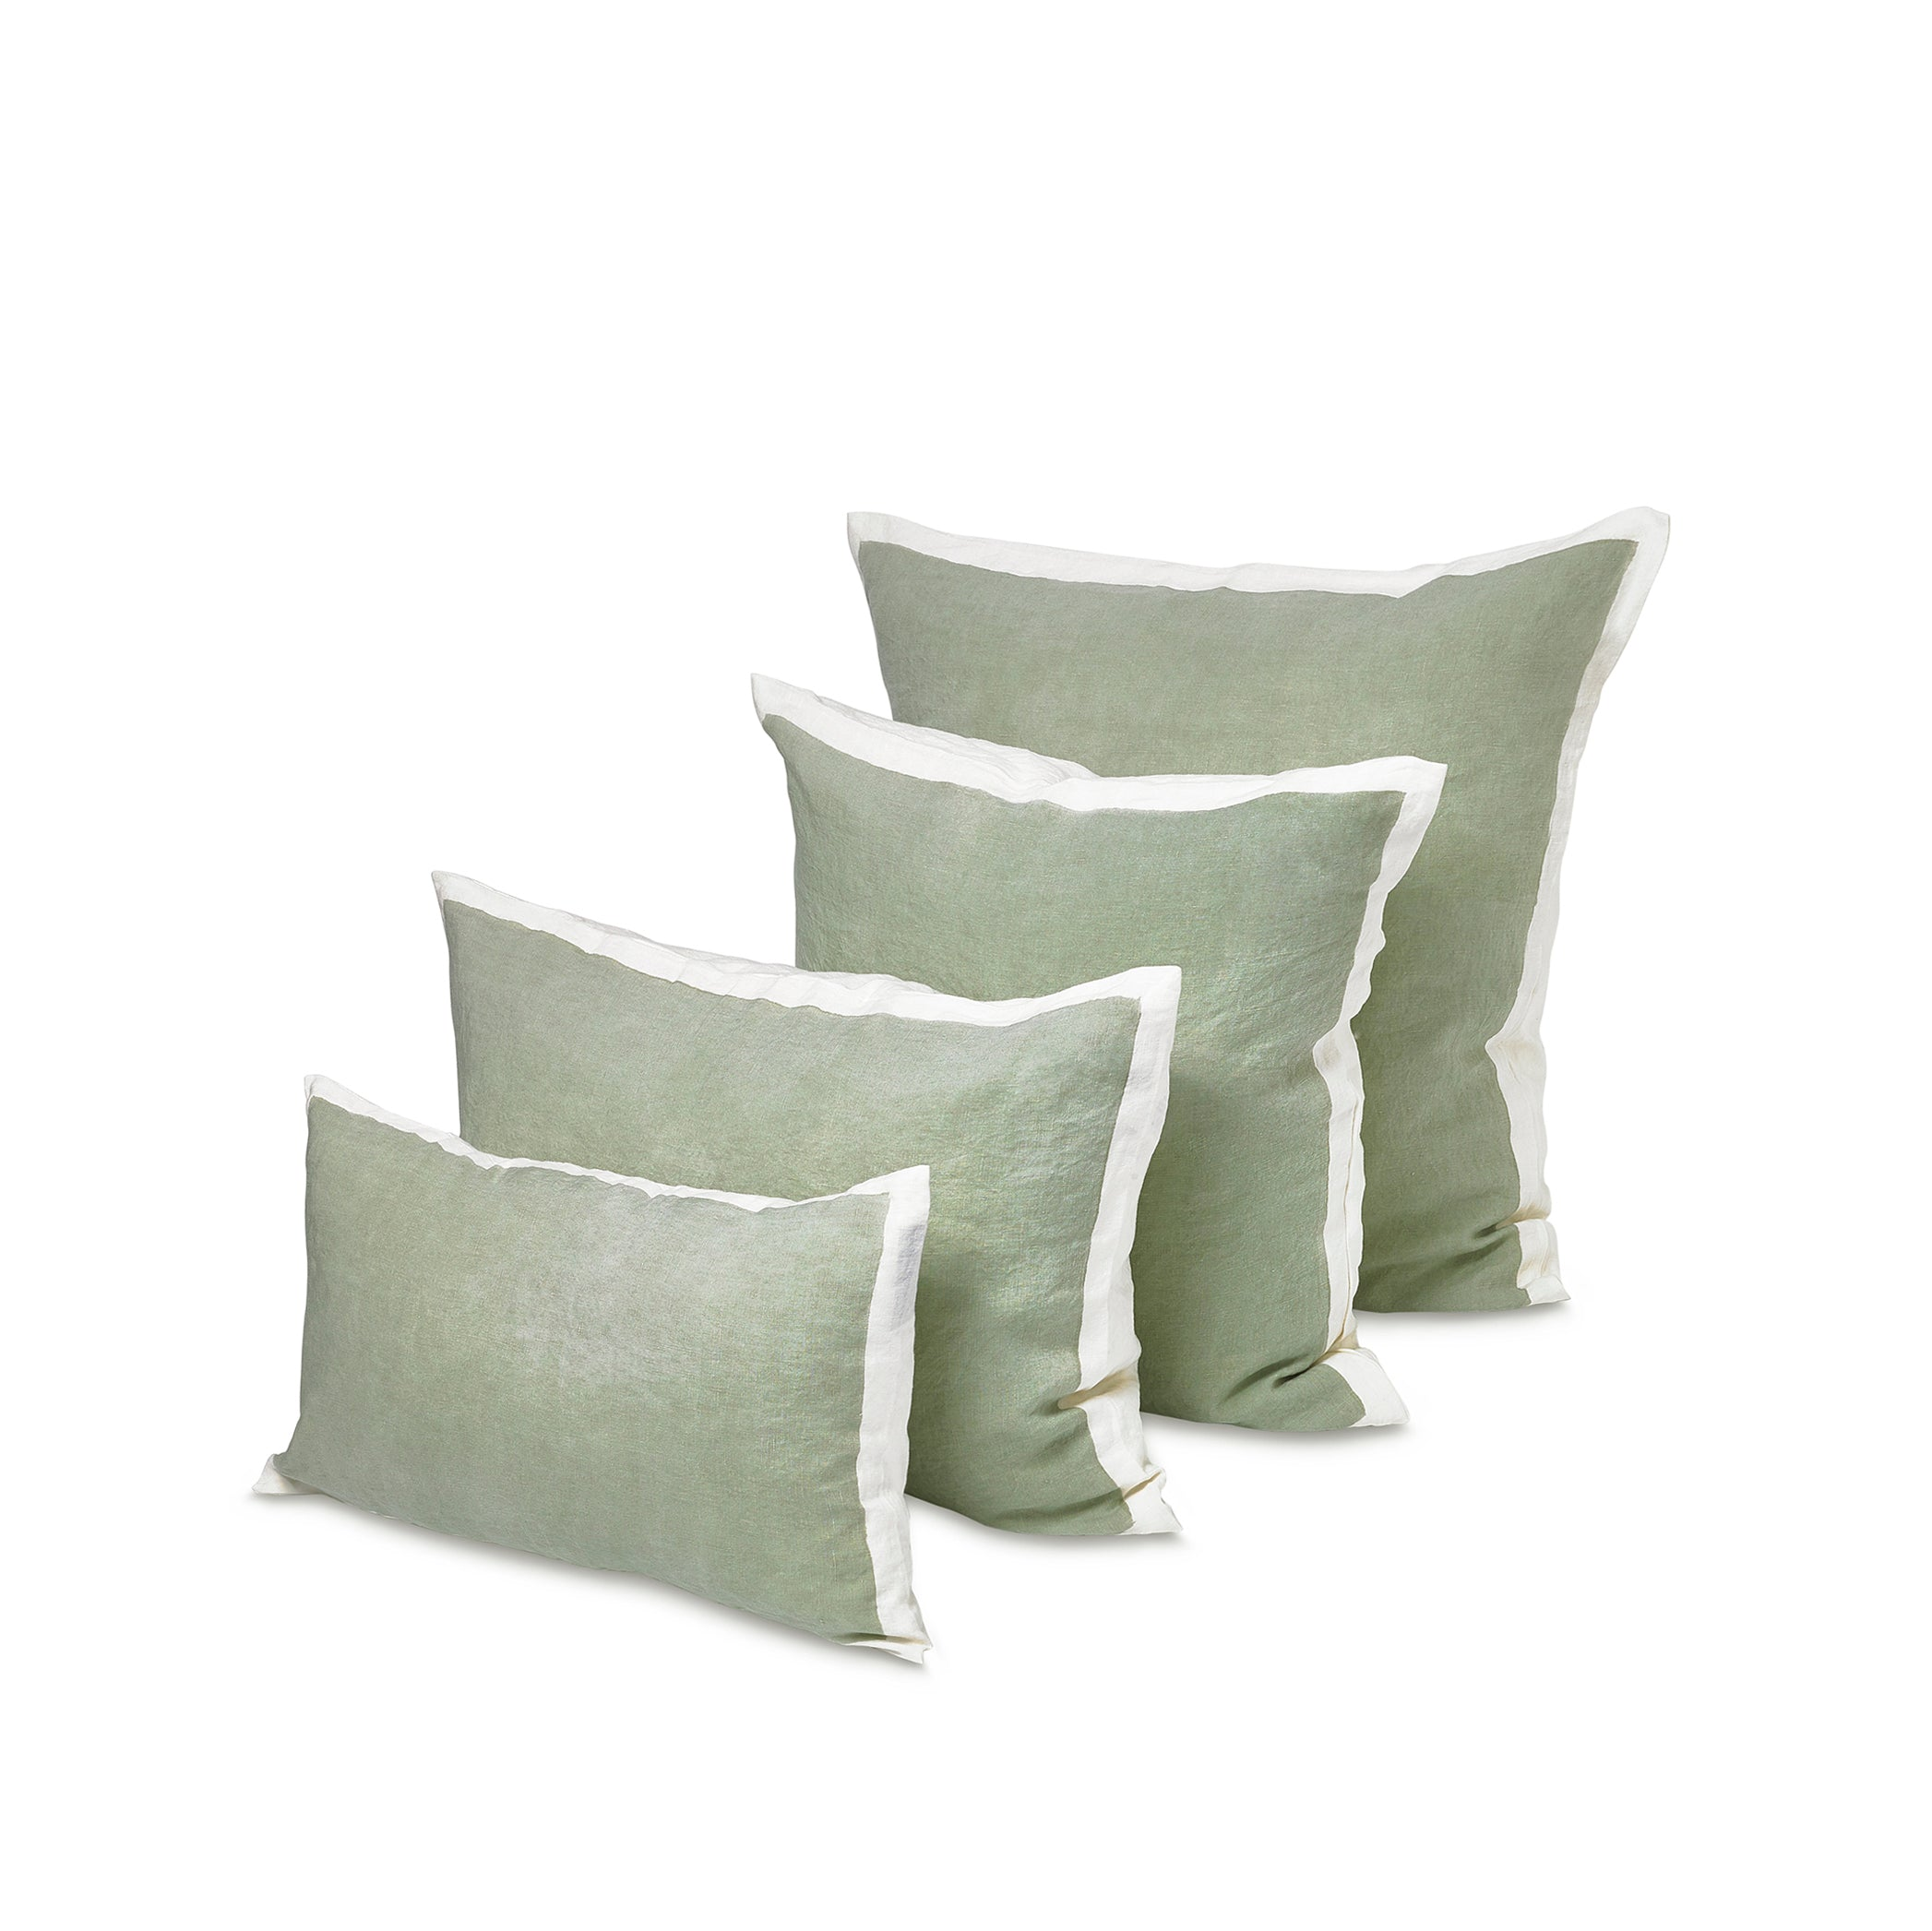 Hand Painted Linen Cushion in Pale Green, 60cm x 40cm